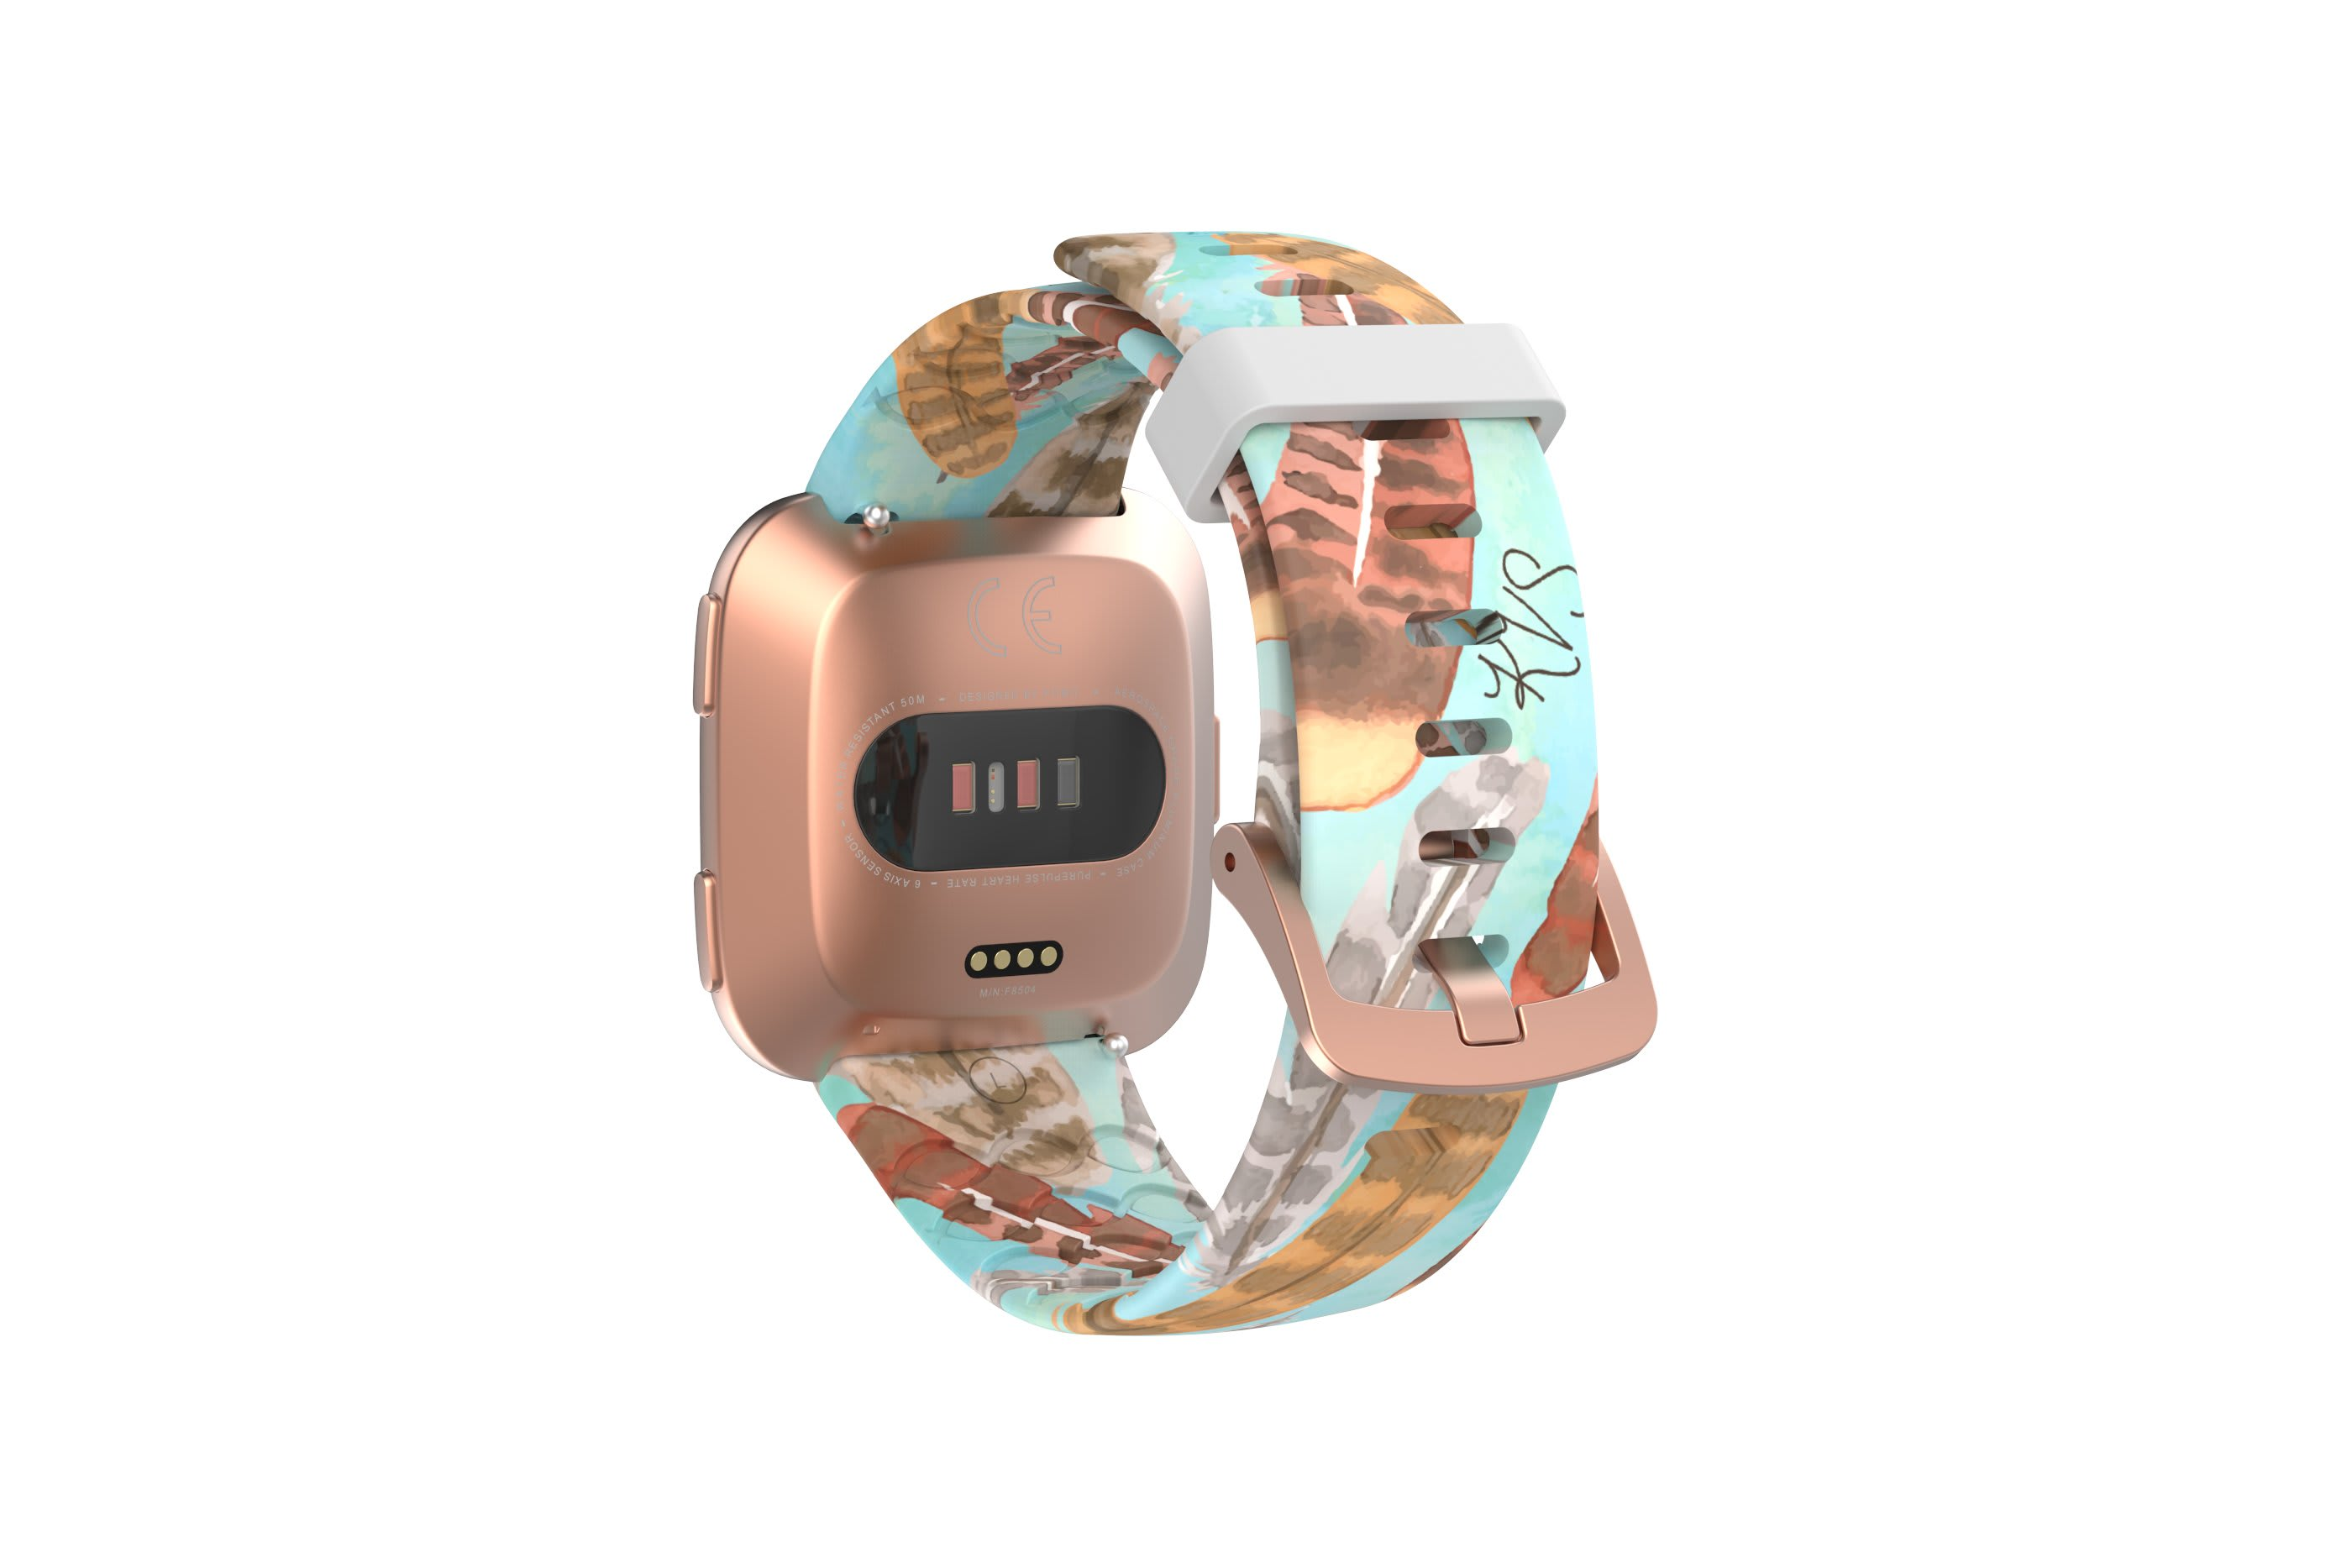 Brave - Katie Van Slyke fitbit versa watch band with rose gold hardware viewed from top down